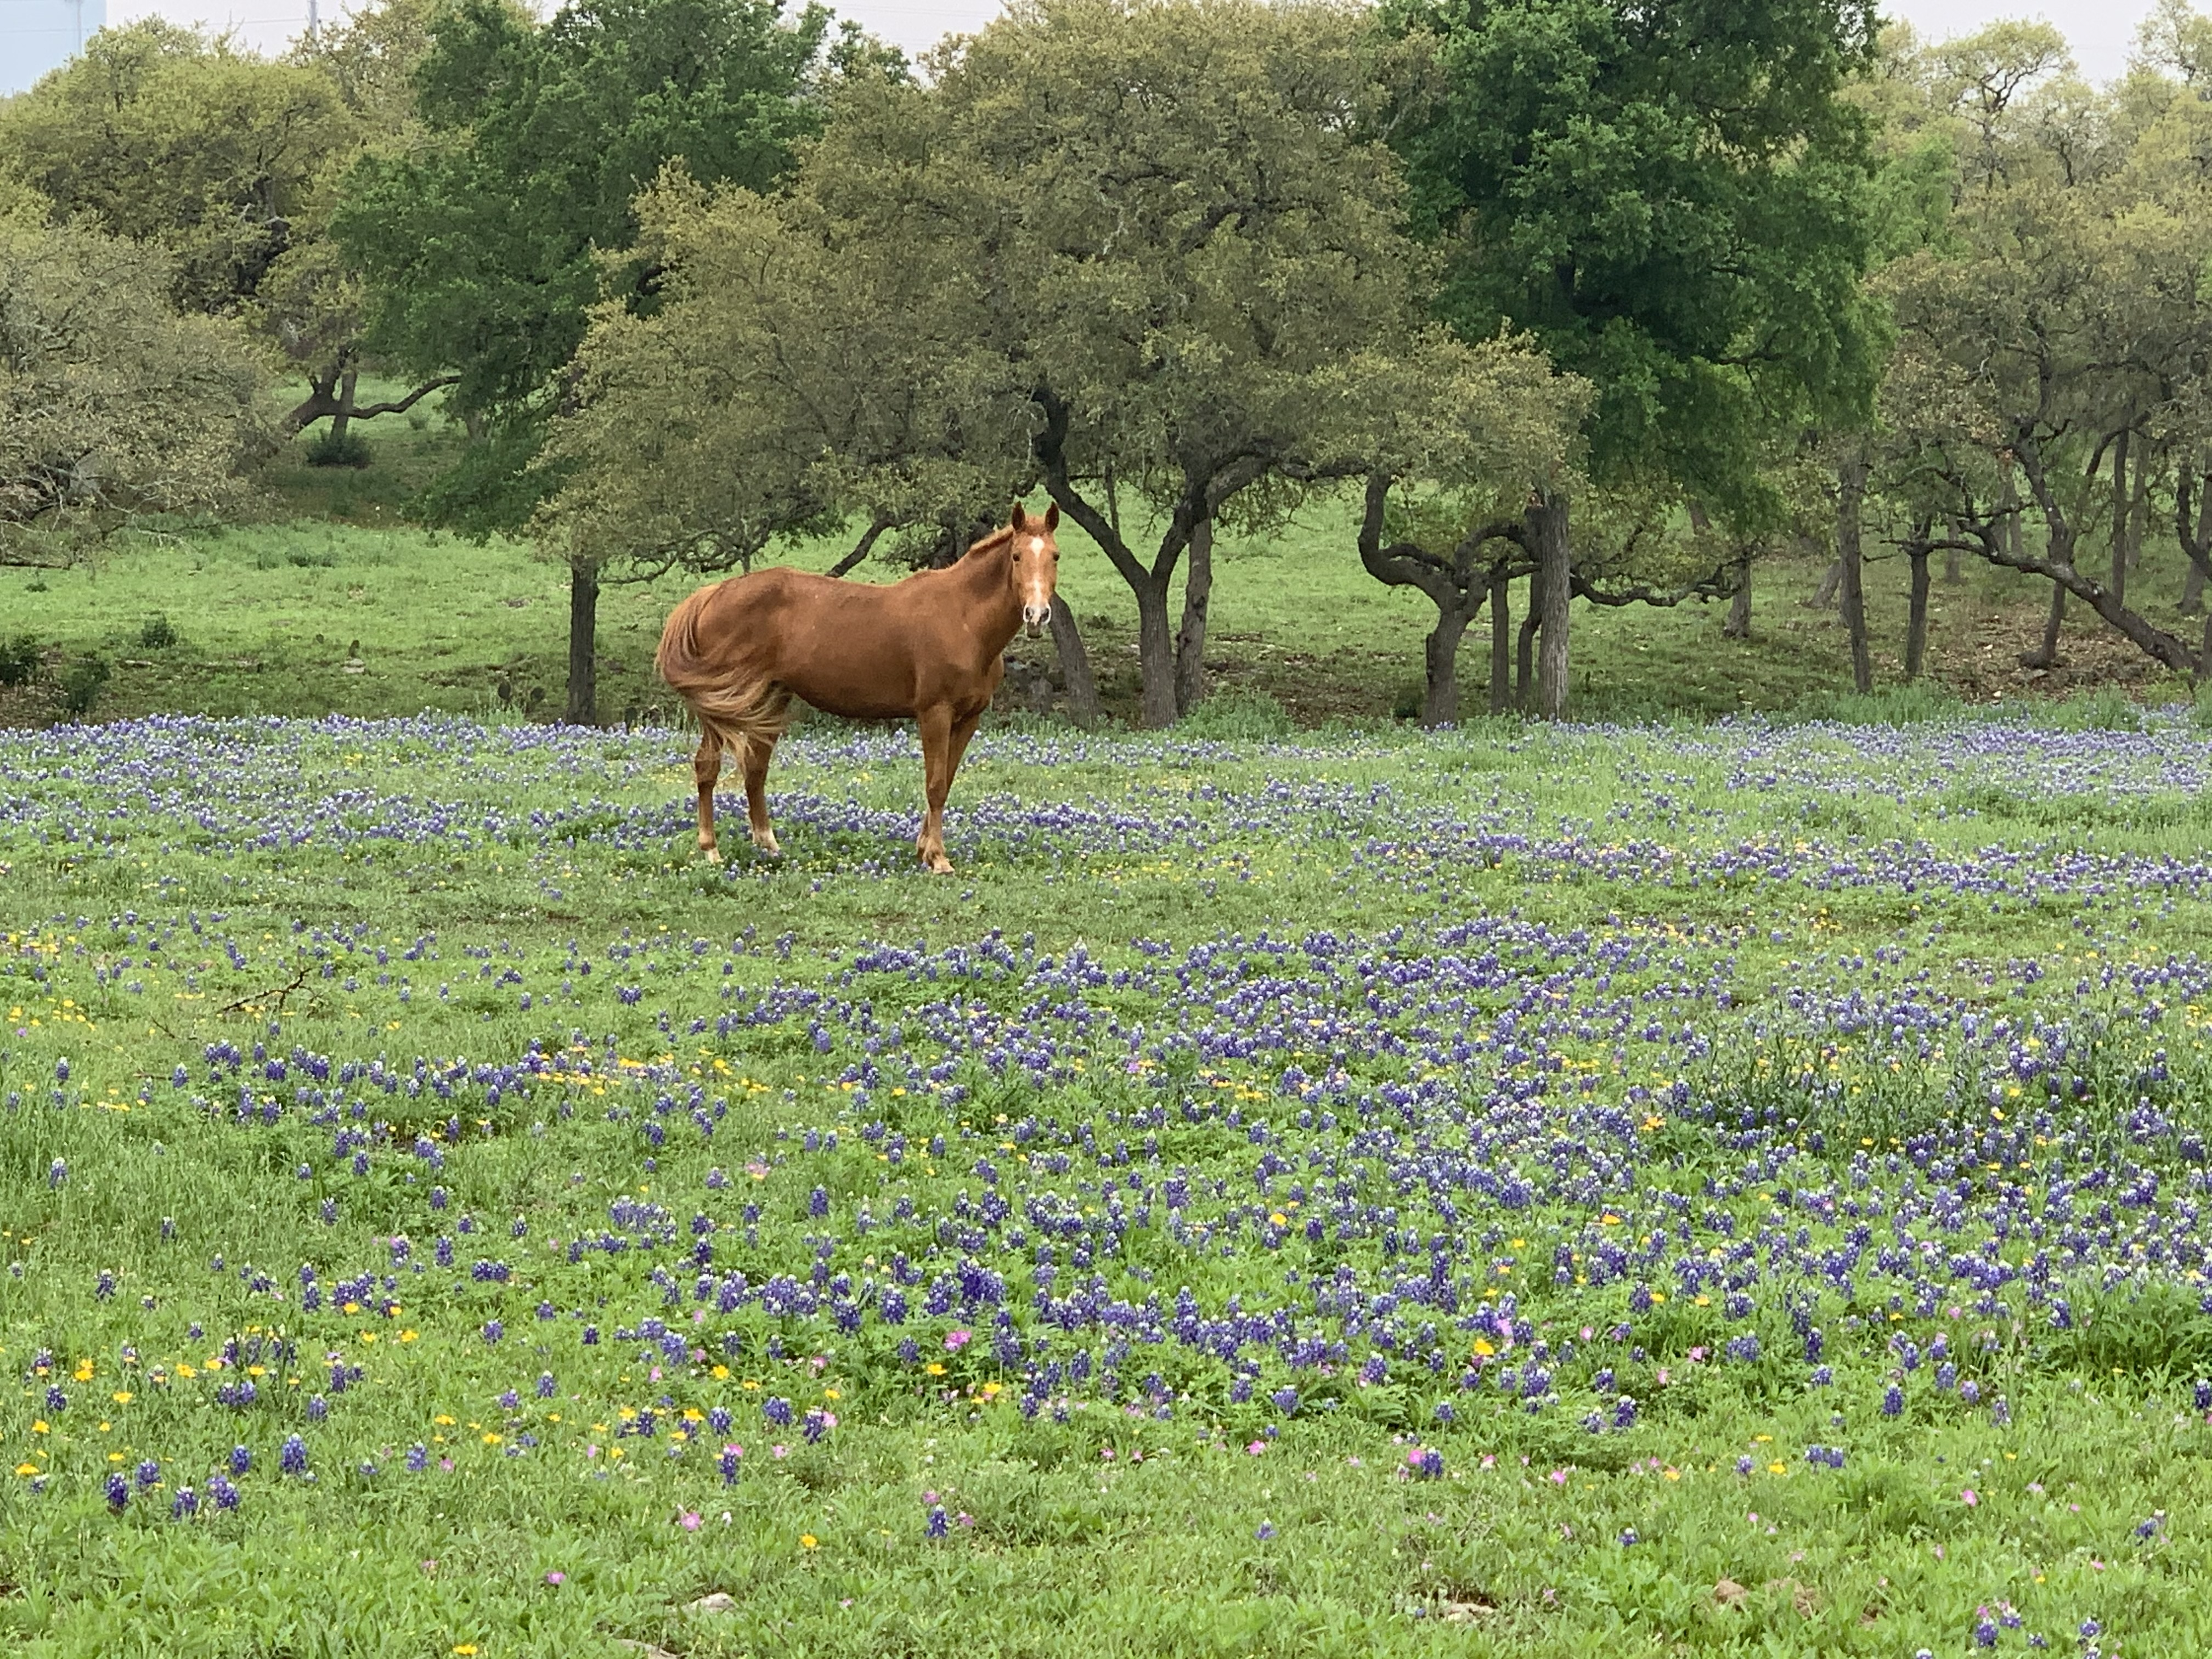 Red horse in bluebonnets. (Courtesy Tera Weiss)